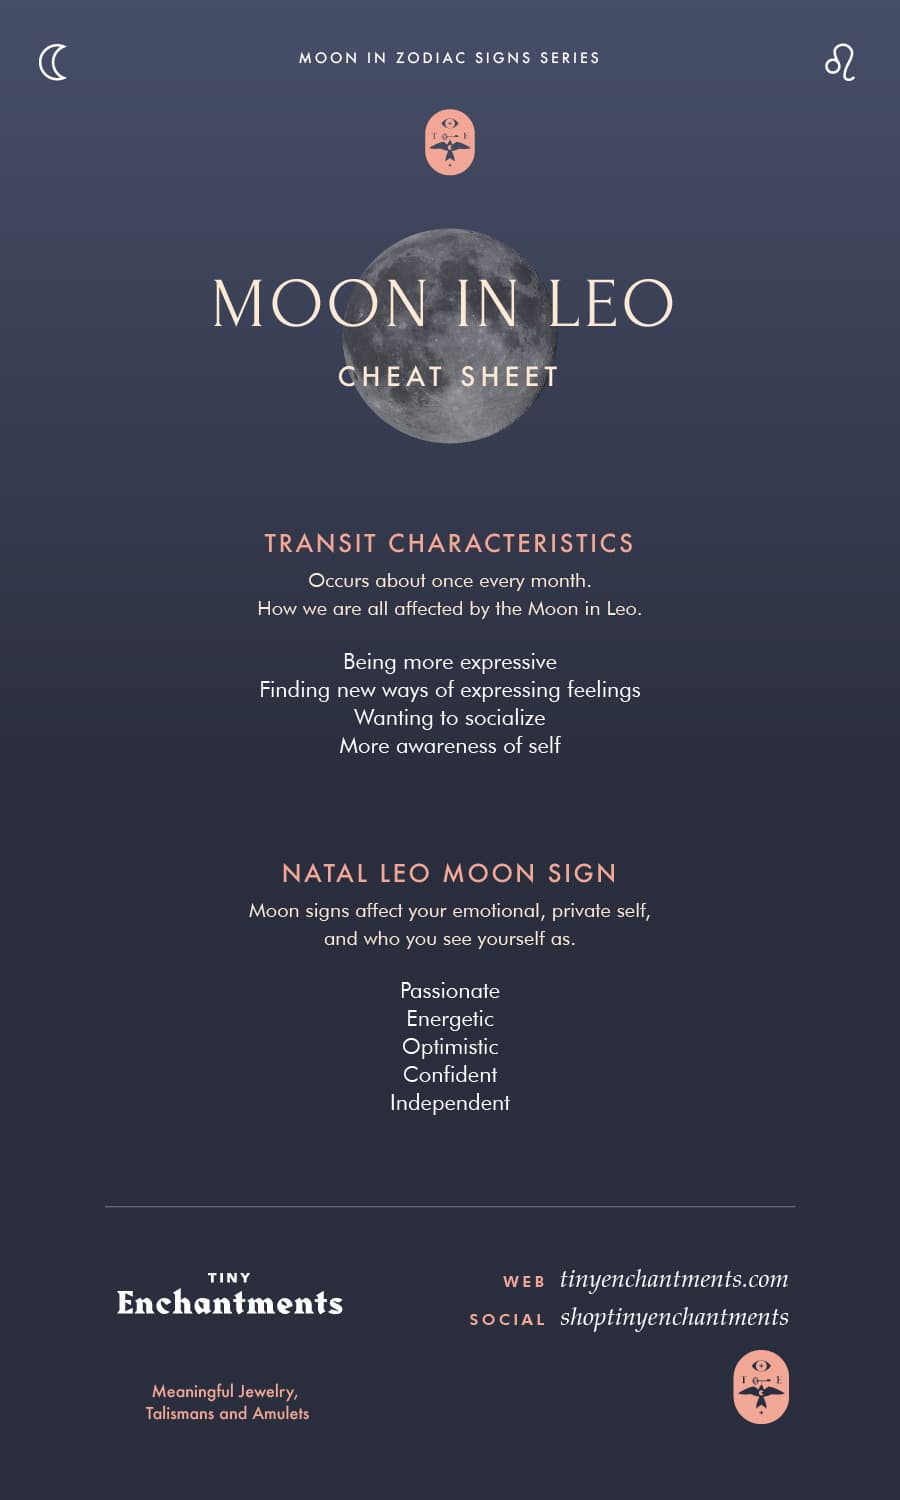 Leo Moon Sign and Moon in Leo Transit Meanings Infographic